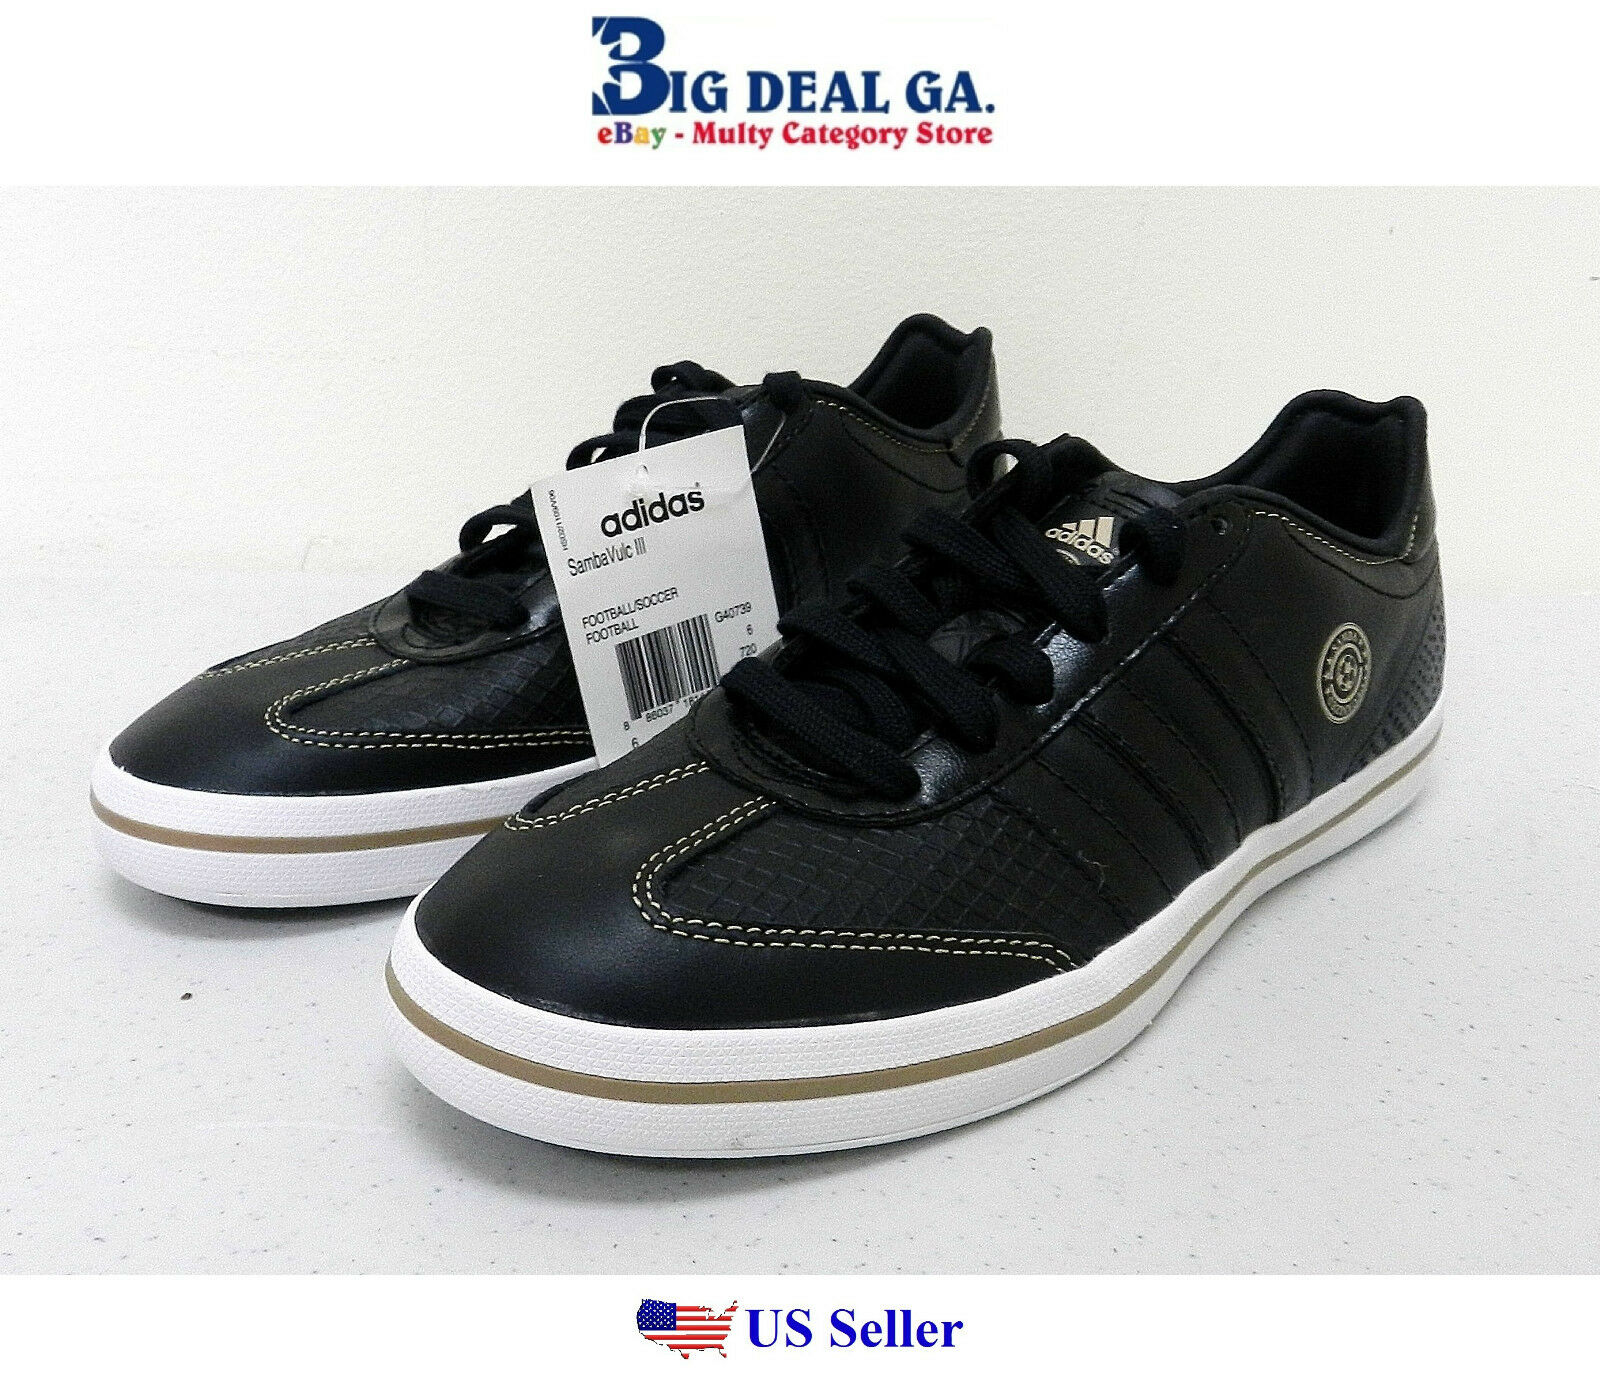 Adidas Samba Vulc III Men's Soccer Shoes G40739 Different Comfortable Cheap women's shoes women's shoes